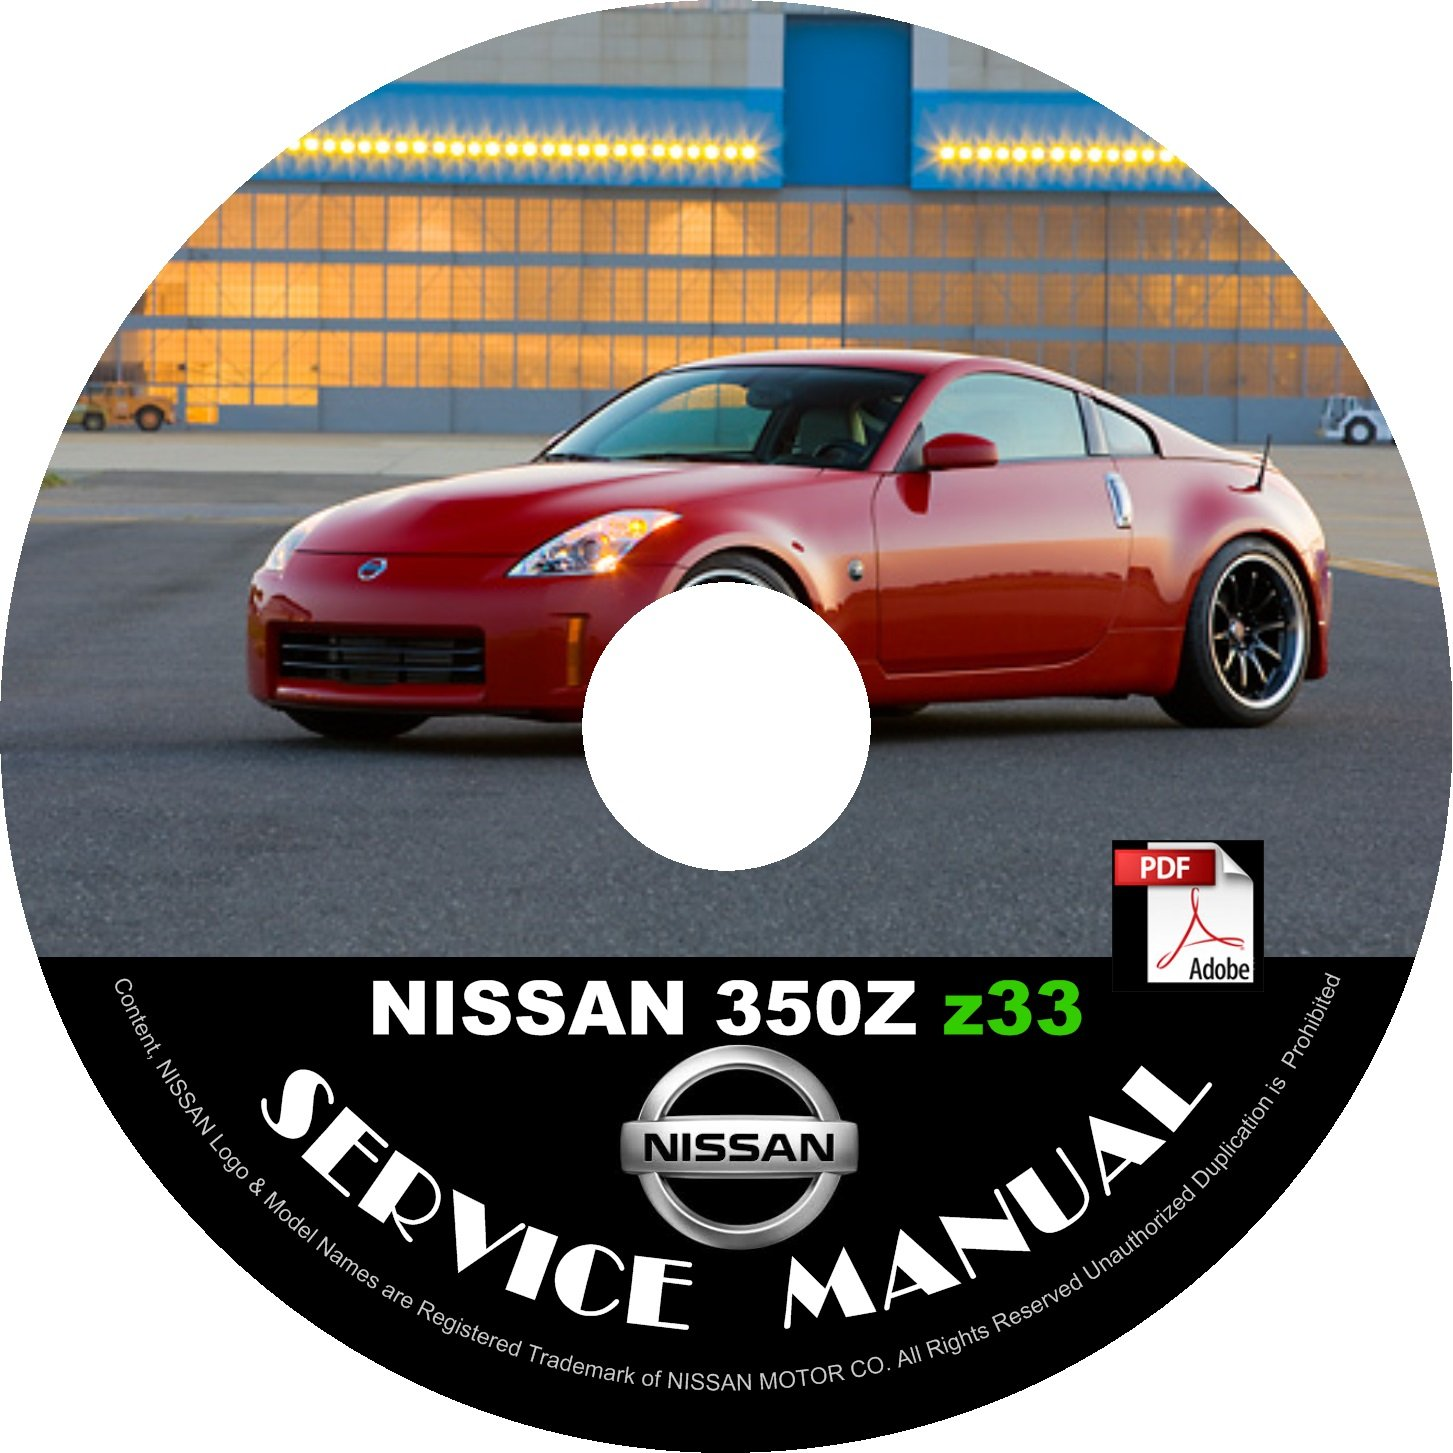 2007 Nissan 350Z Coupe Factory Service Repair Shop Manual on